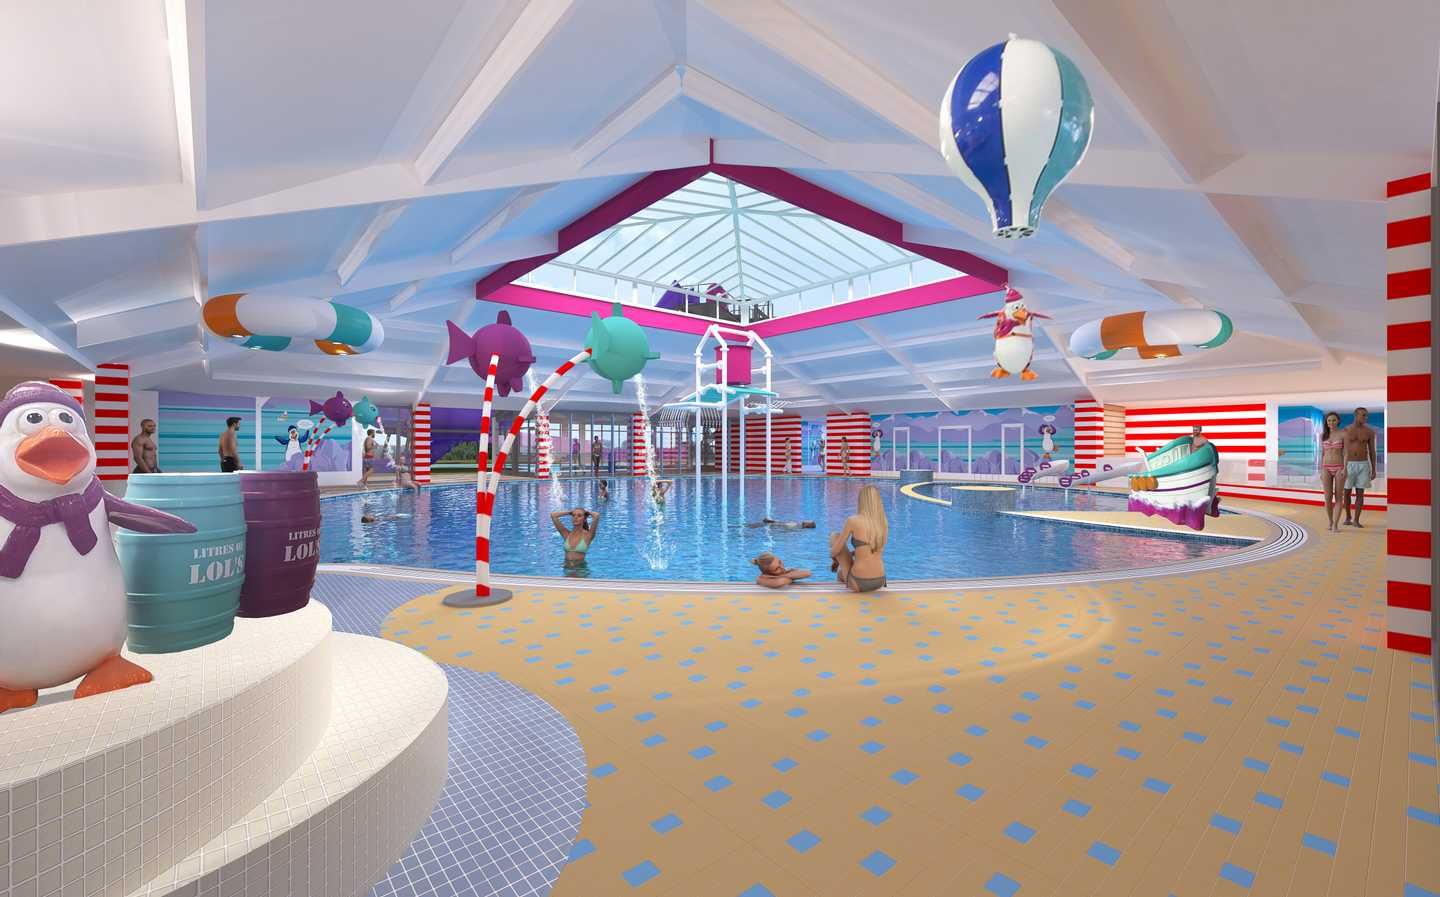 Artists impression of the new pool development at Thorpe Park